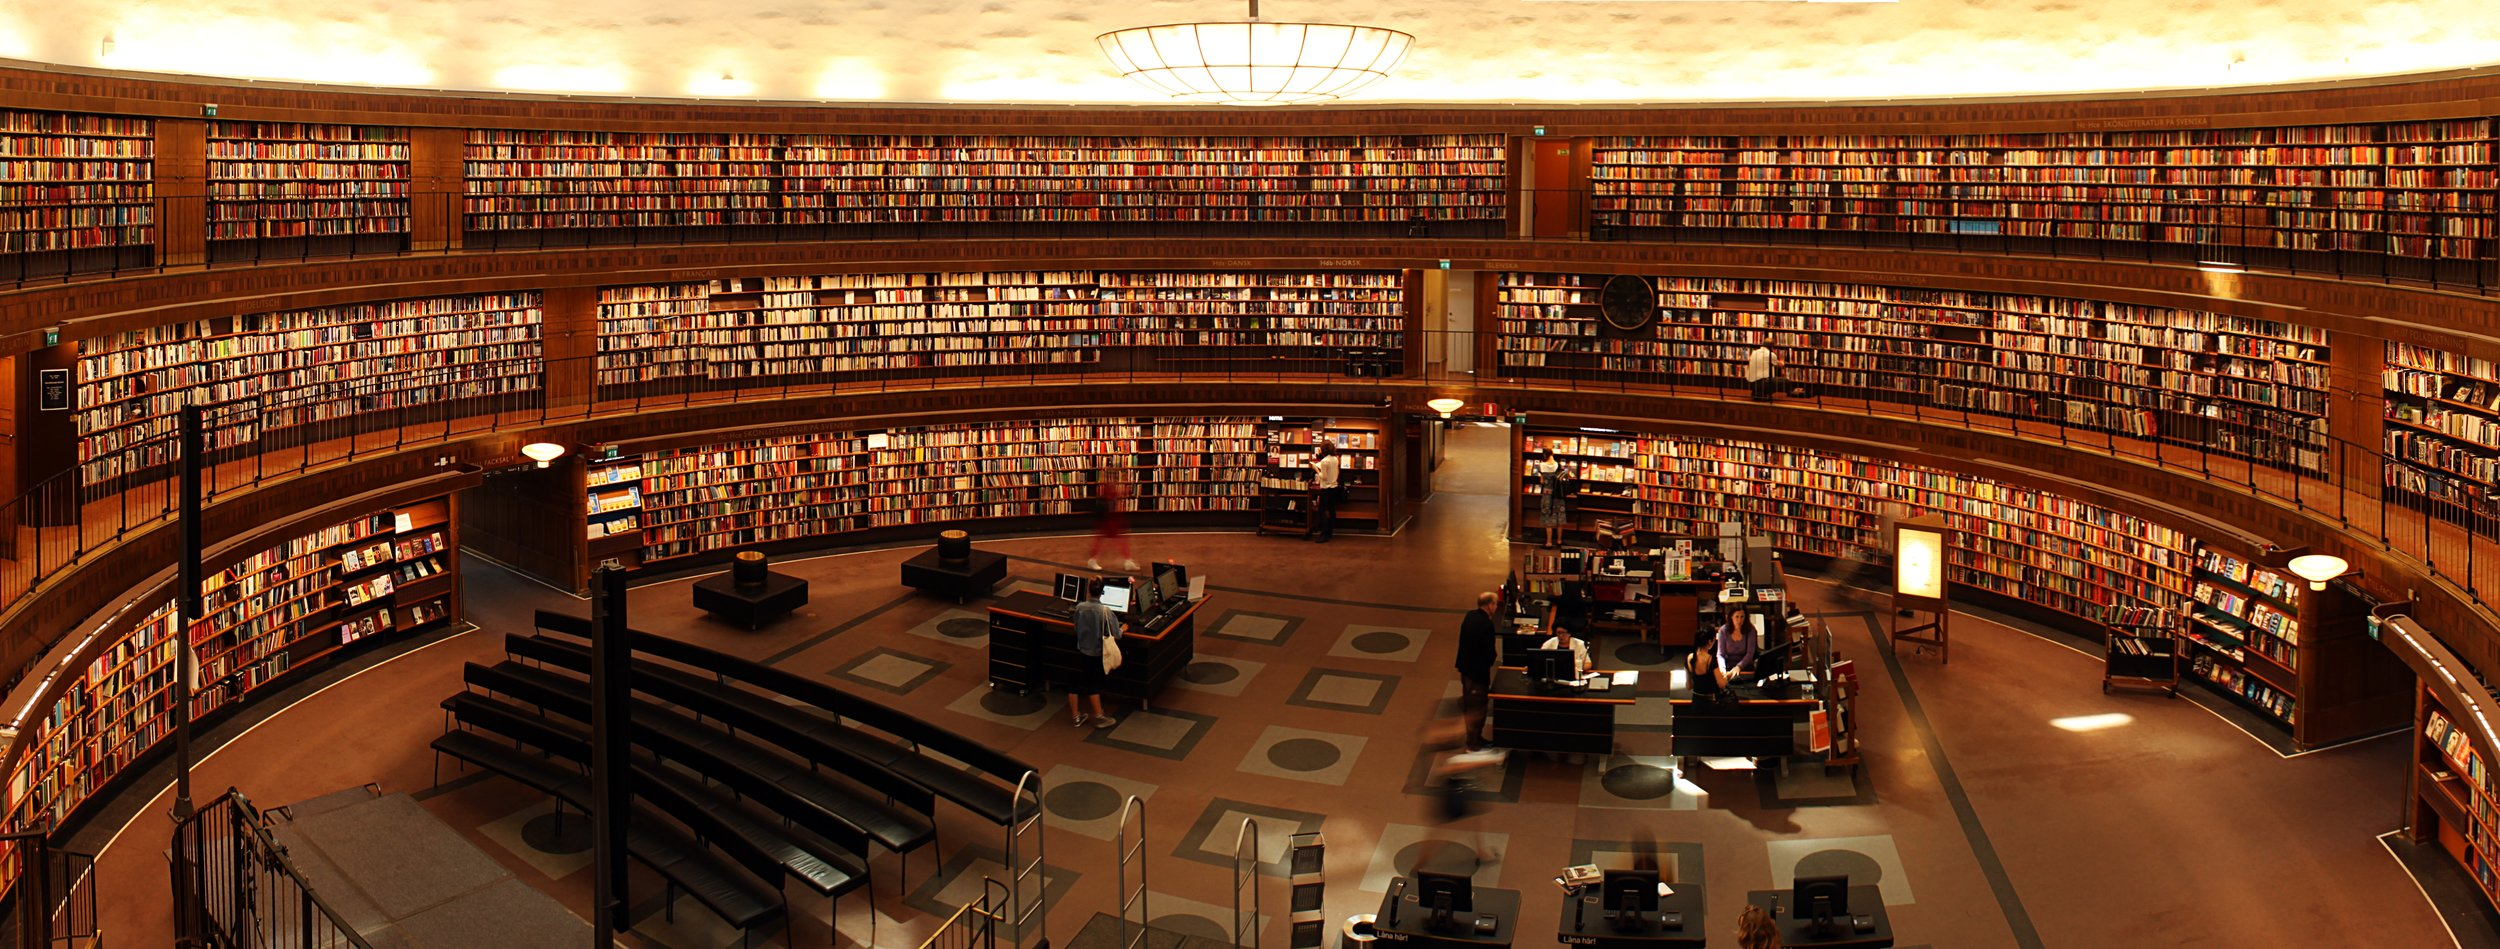 books-library-students-12064.jpg